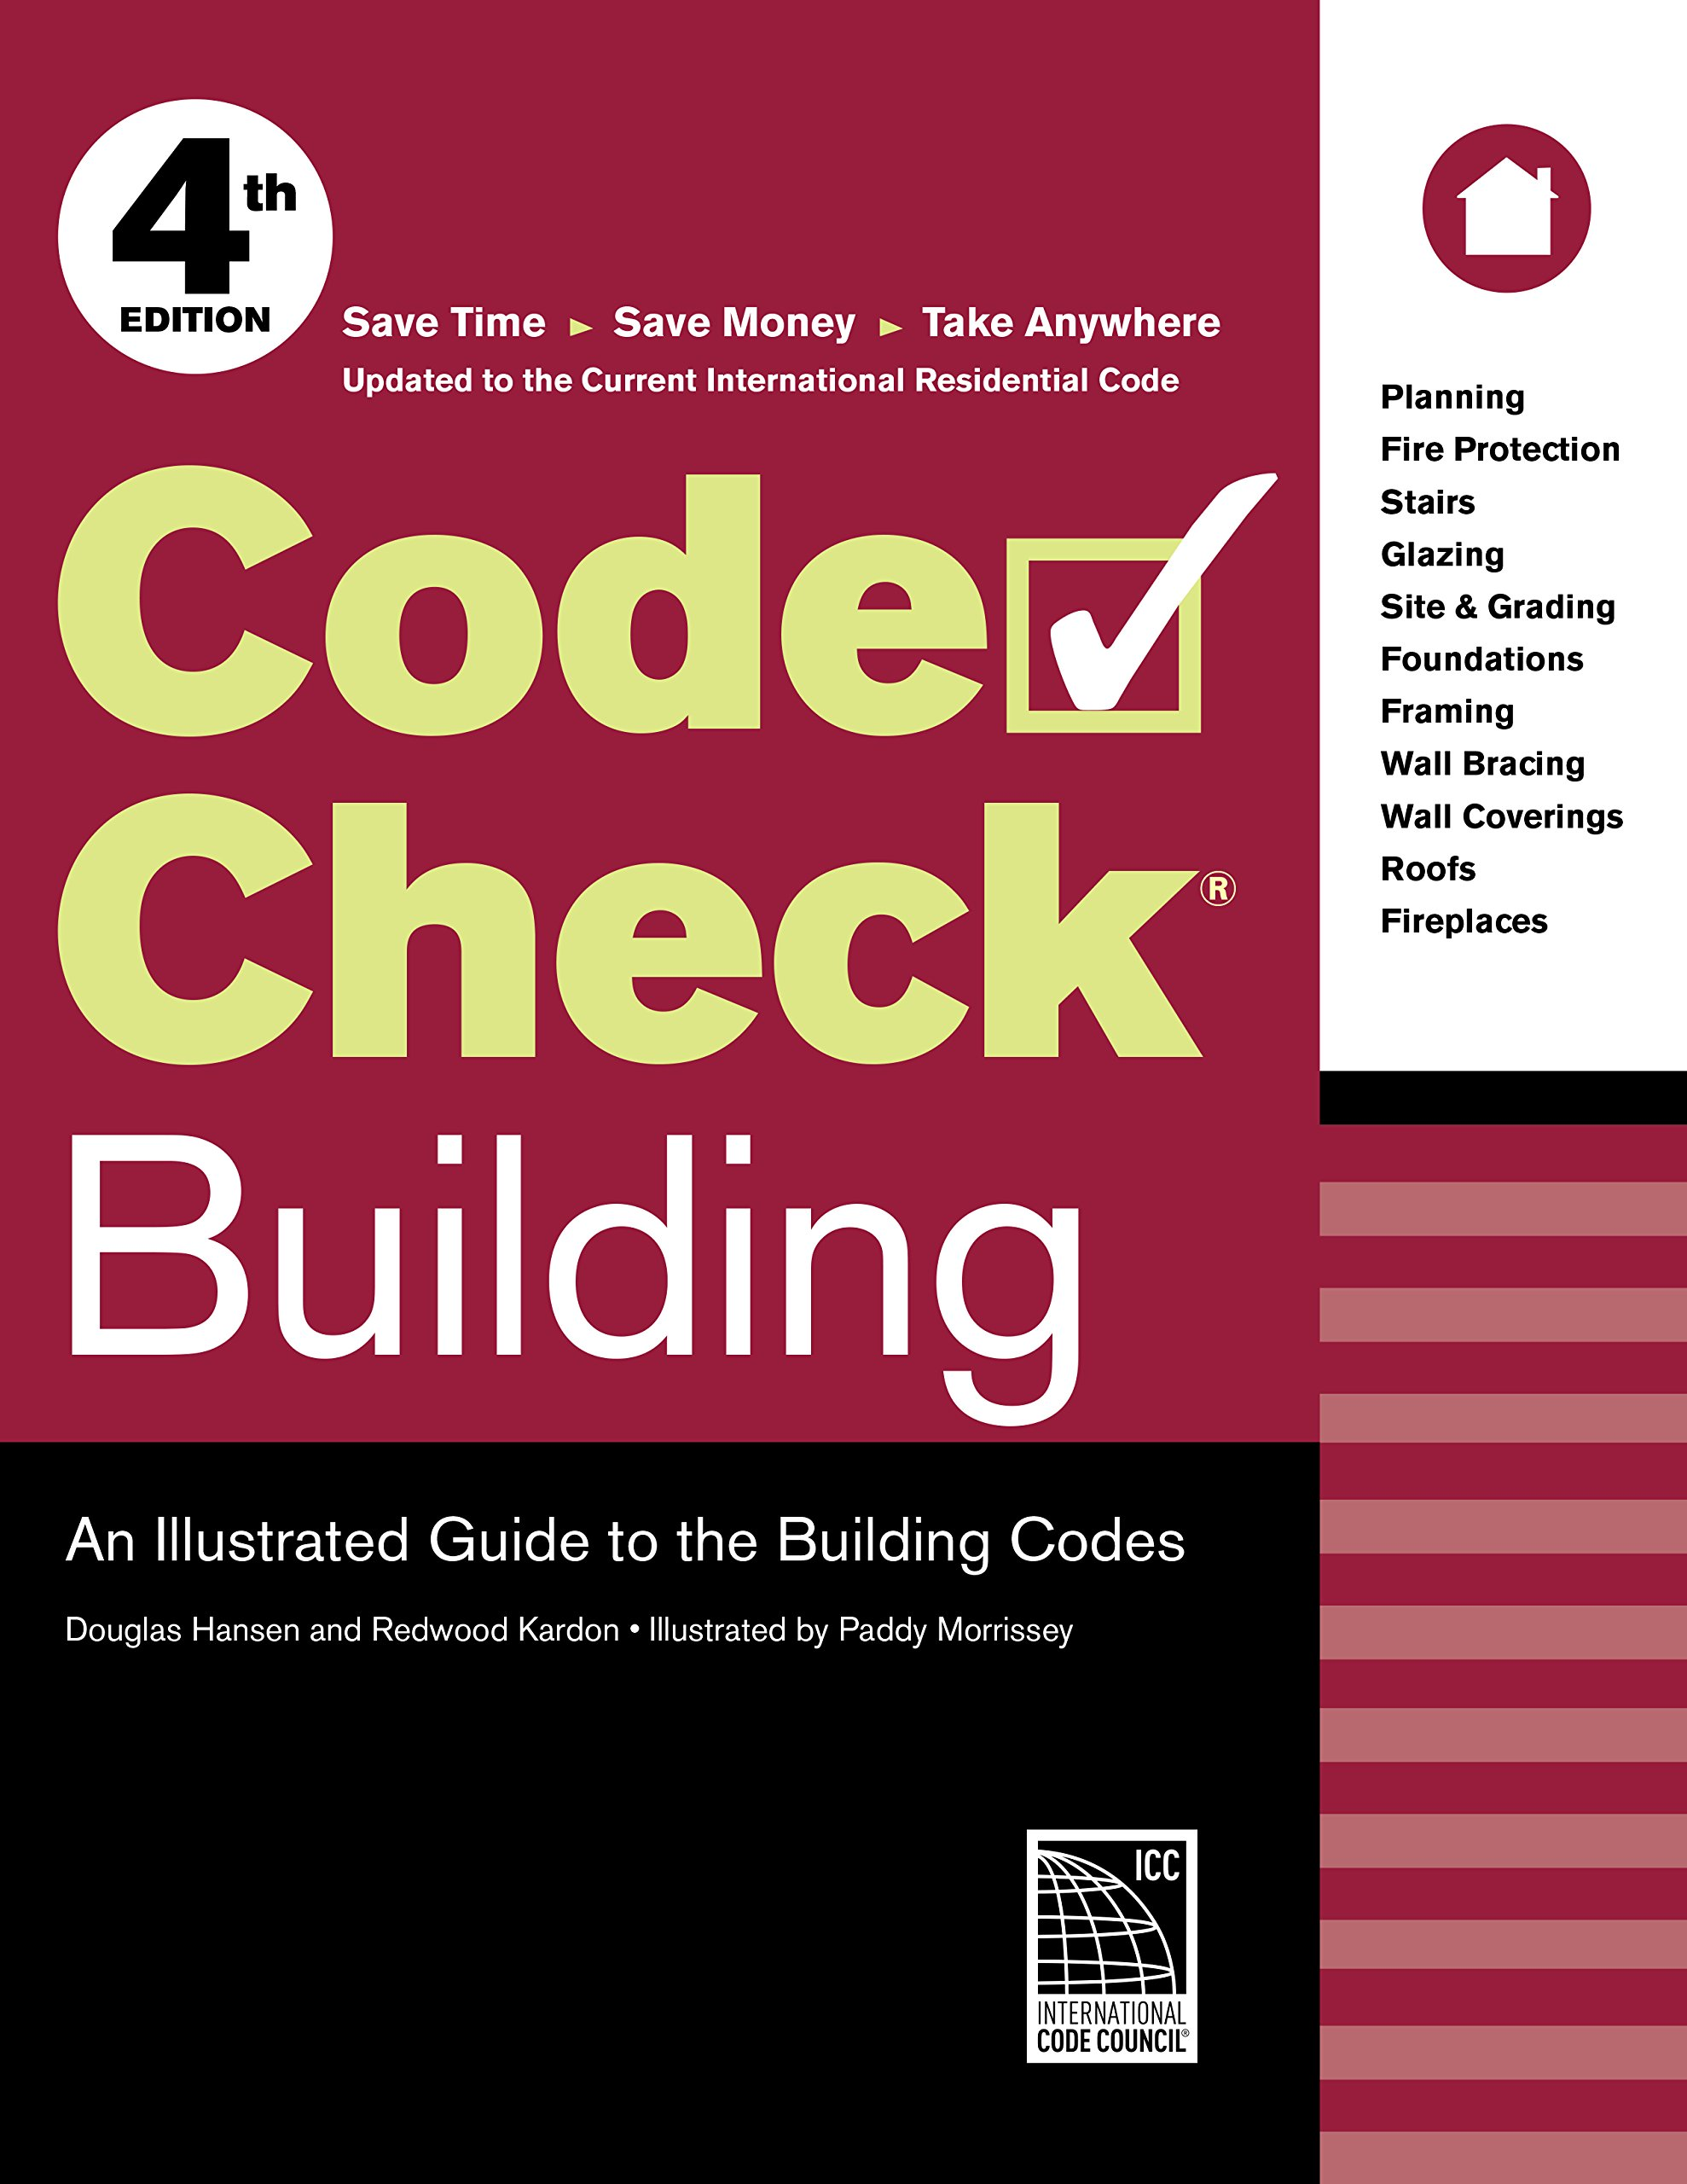 Code Check Building: An Illustrated Guide to the Building Codes: Redwood  Kardon, Douglas Hansen, Paddy Morrissey: 9781631865657: Amazon.com: Books